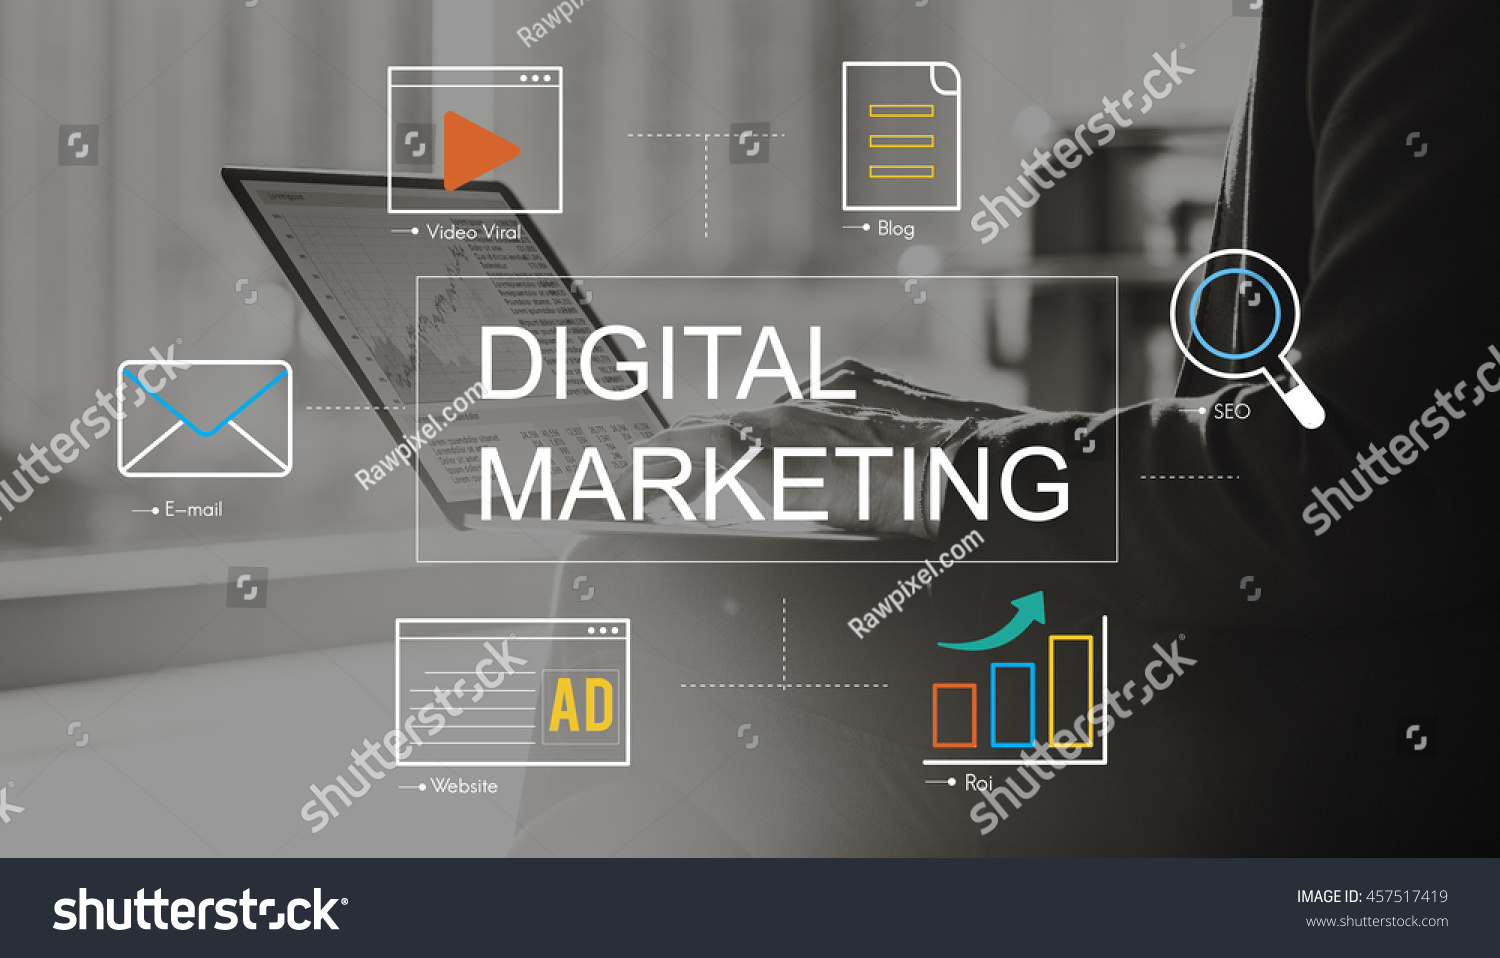 Digital Marketing Media Technology Graphic Concept #457517419